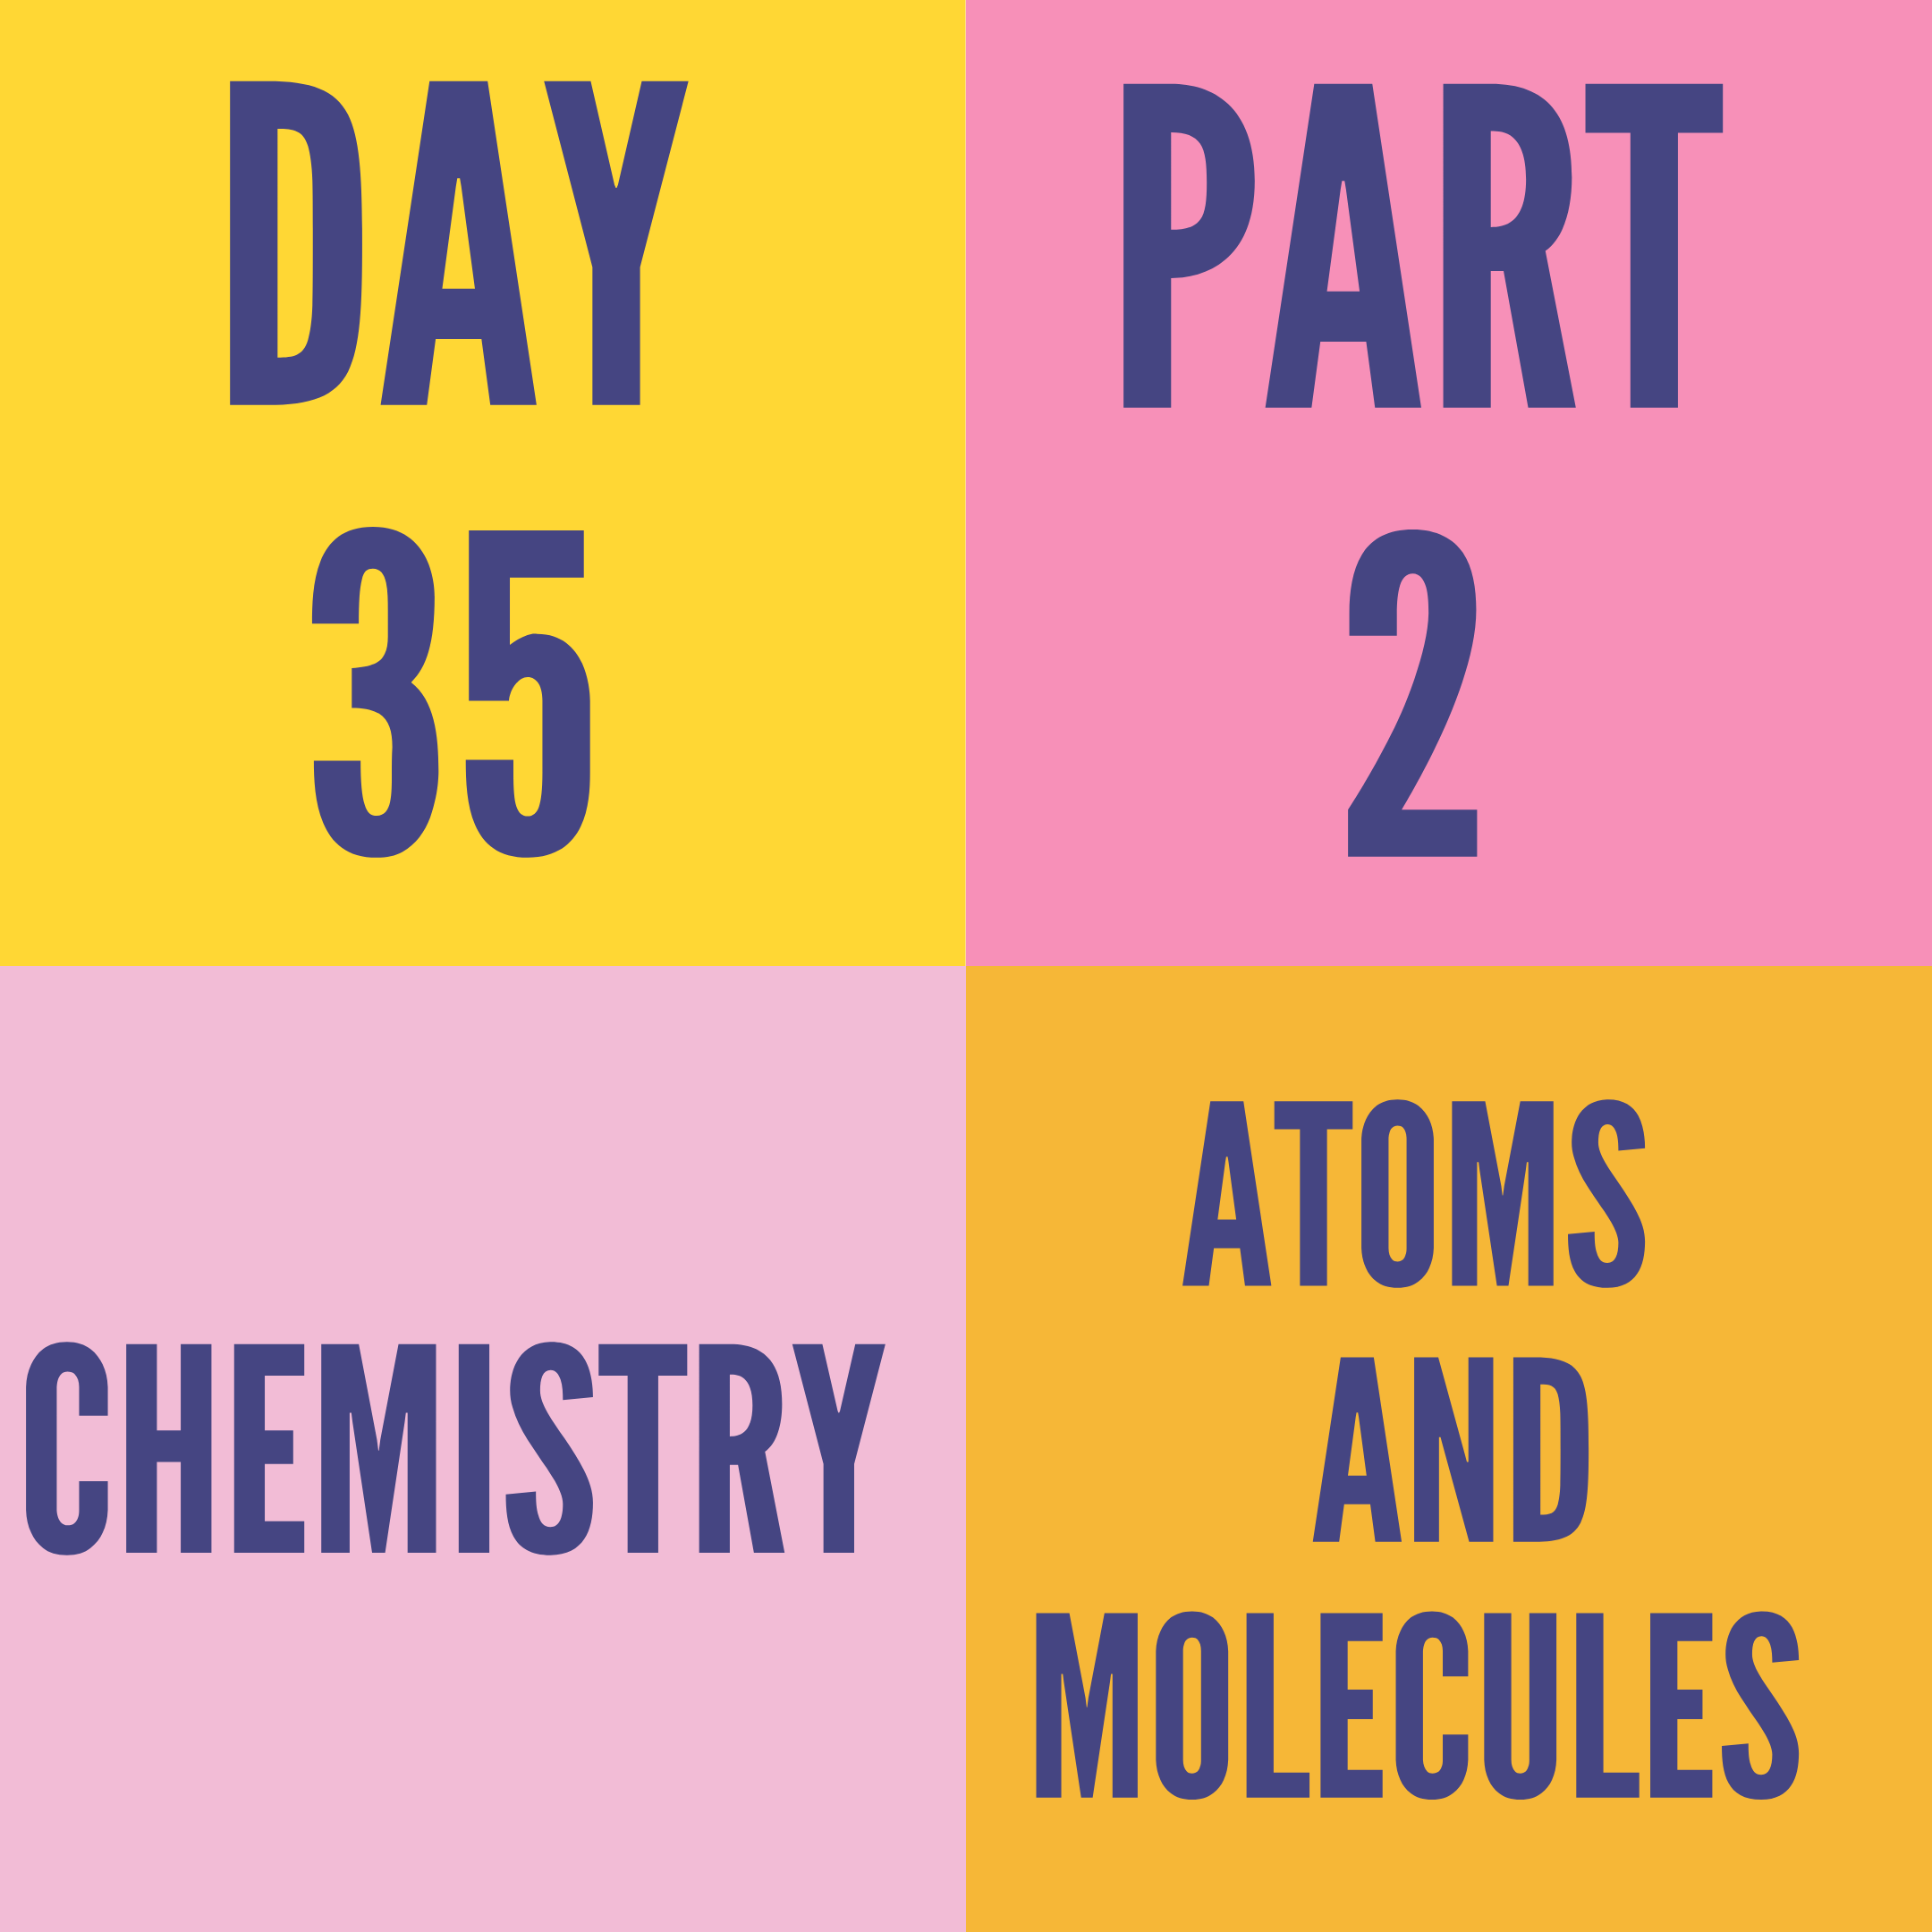 DAY-35 PART-2 ATOMS AND MOLECULES